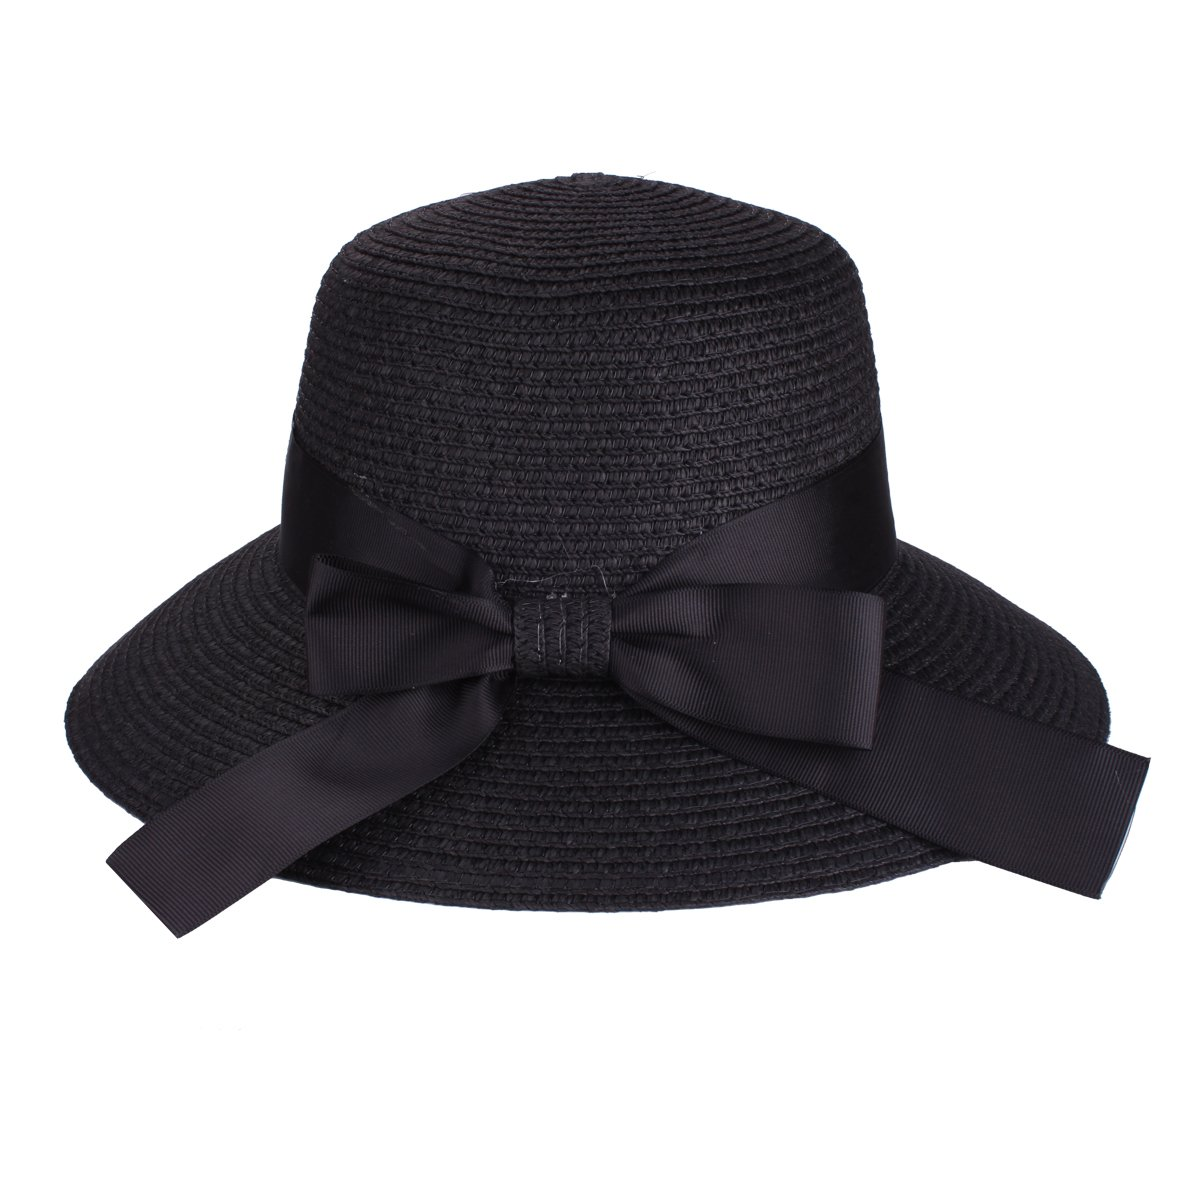 Floppy Hat Summer Beach Sun Straw Hats Anti-UV Protection Hat Travel Packable UPF 50+ Foldable Wide Brim Hat Travel Packable Cap for Women